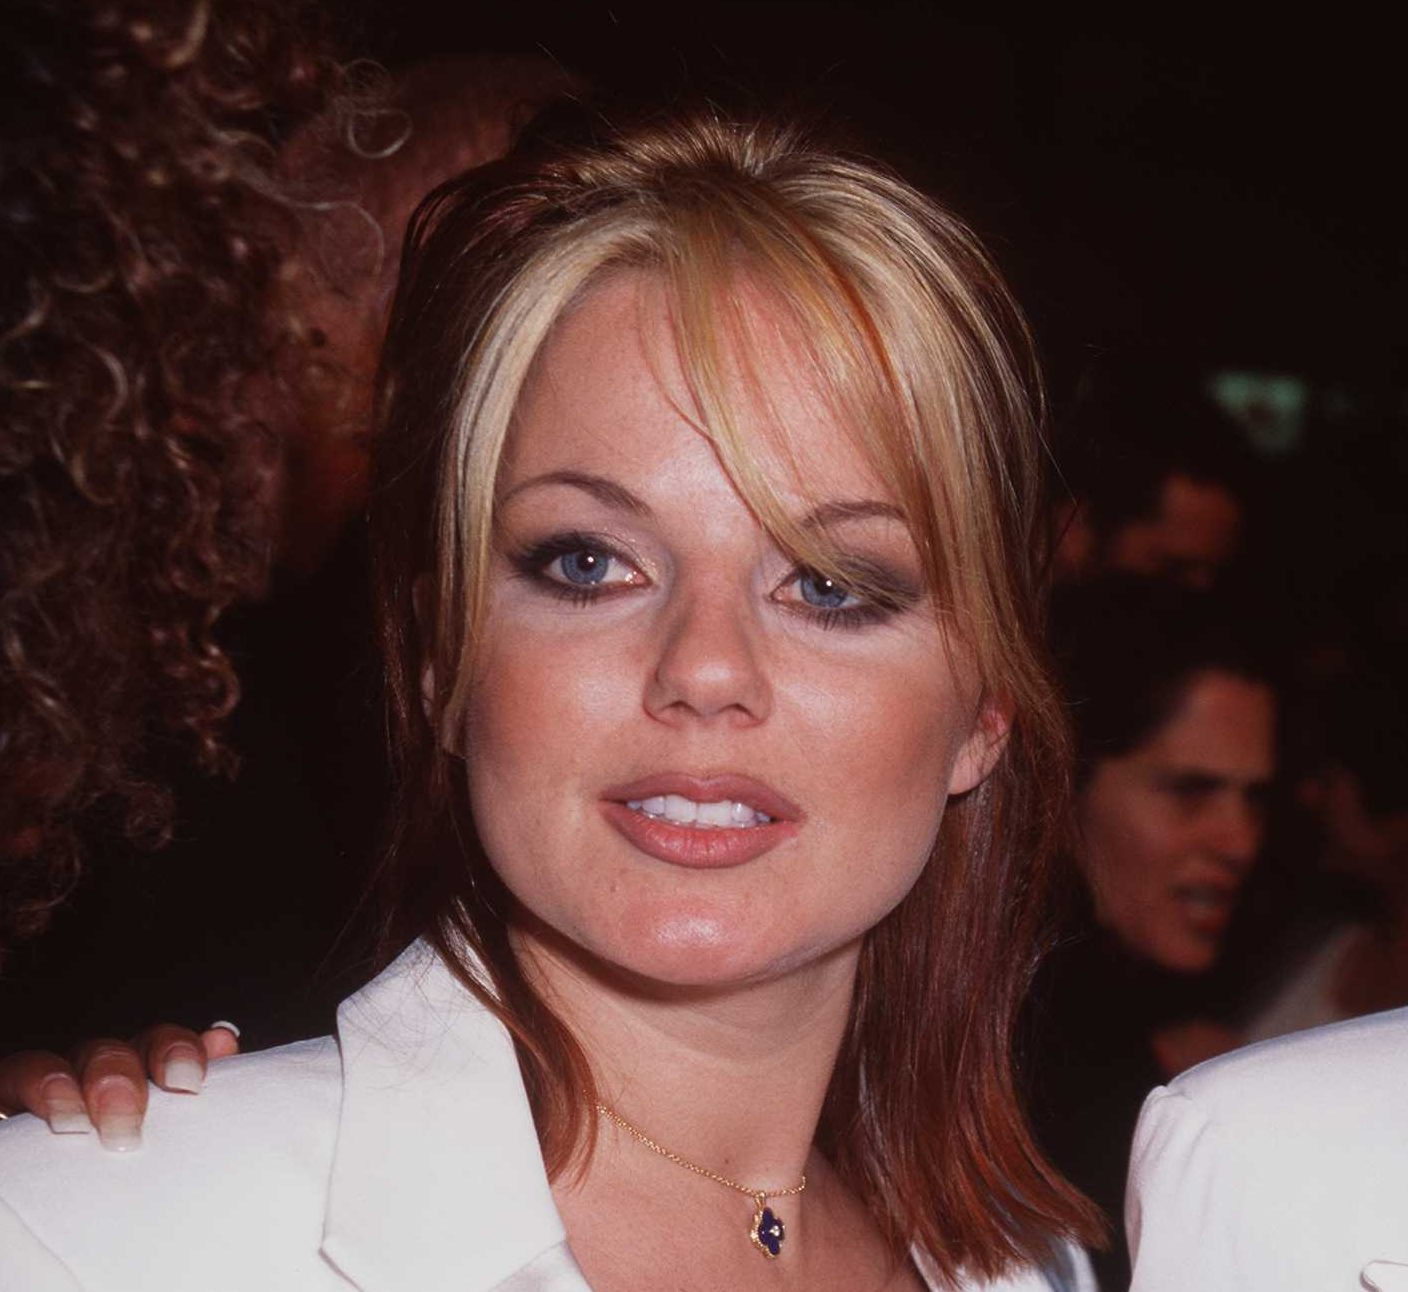 gettyimages 1140799 e1624023625623 Zig-A-Zig-Ah! It's 25 Fascinating Facts About The Spice Girls!